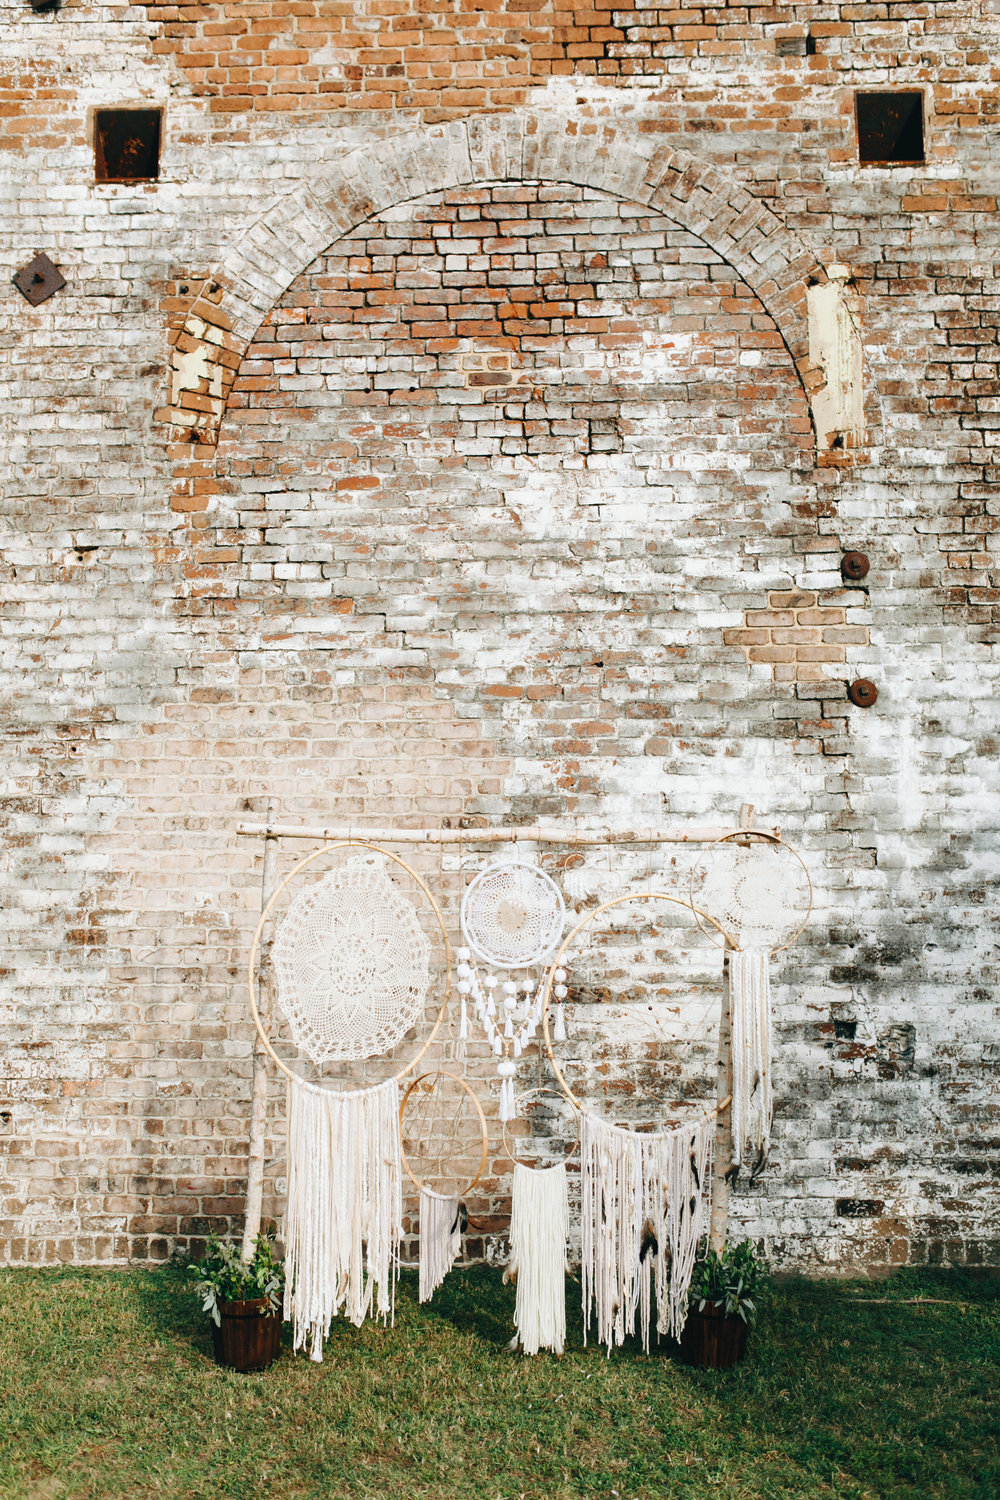 darling-juliet-photography-ivory-and-beau-bridal-boutique-savannah-wedding-dresses-savannah-bridal-gowns-daughters-of-simone-winnie-savannah-florist-boho-wedding-savannah-boho-wedding-roundhouse-railroad-musuem-wedding-37.jpg